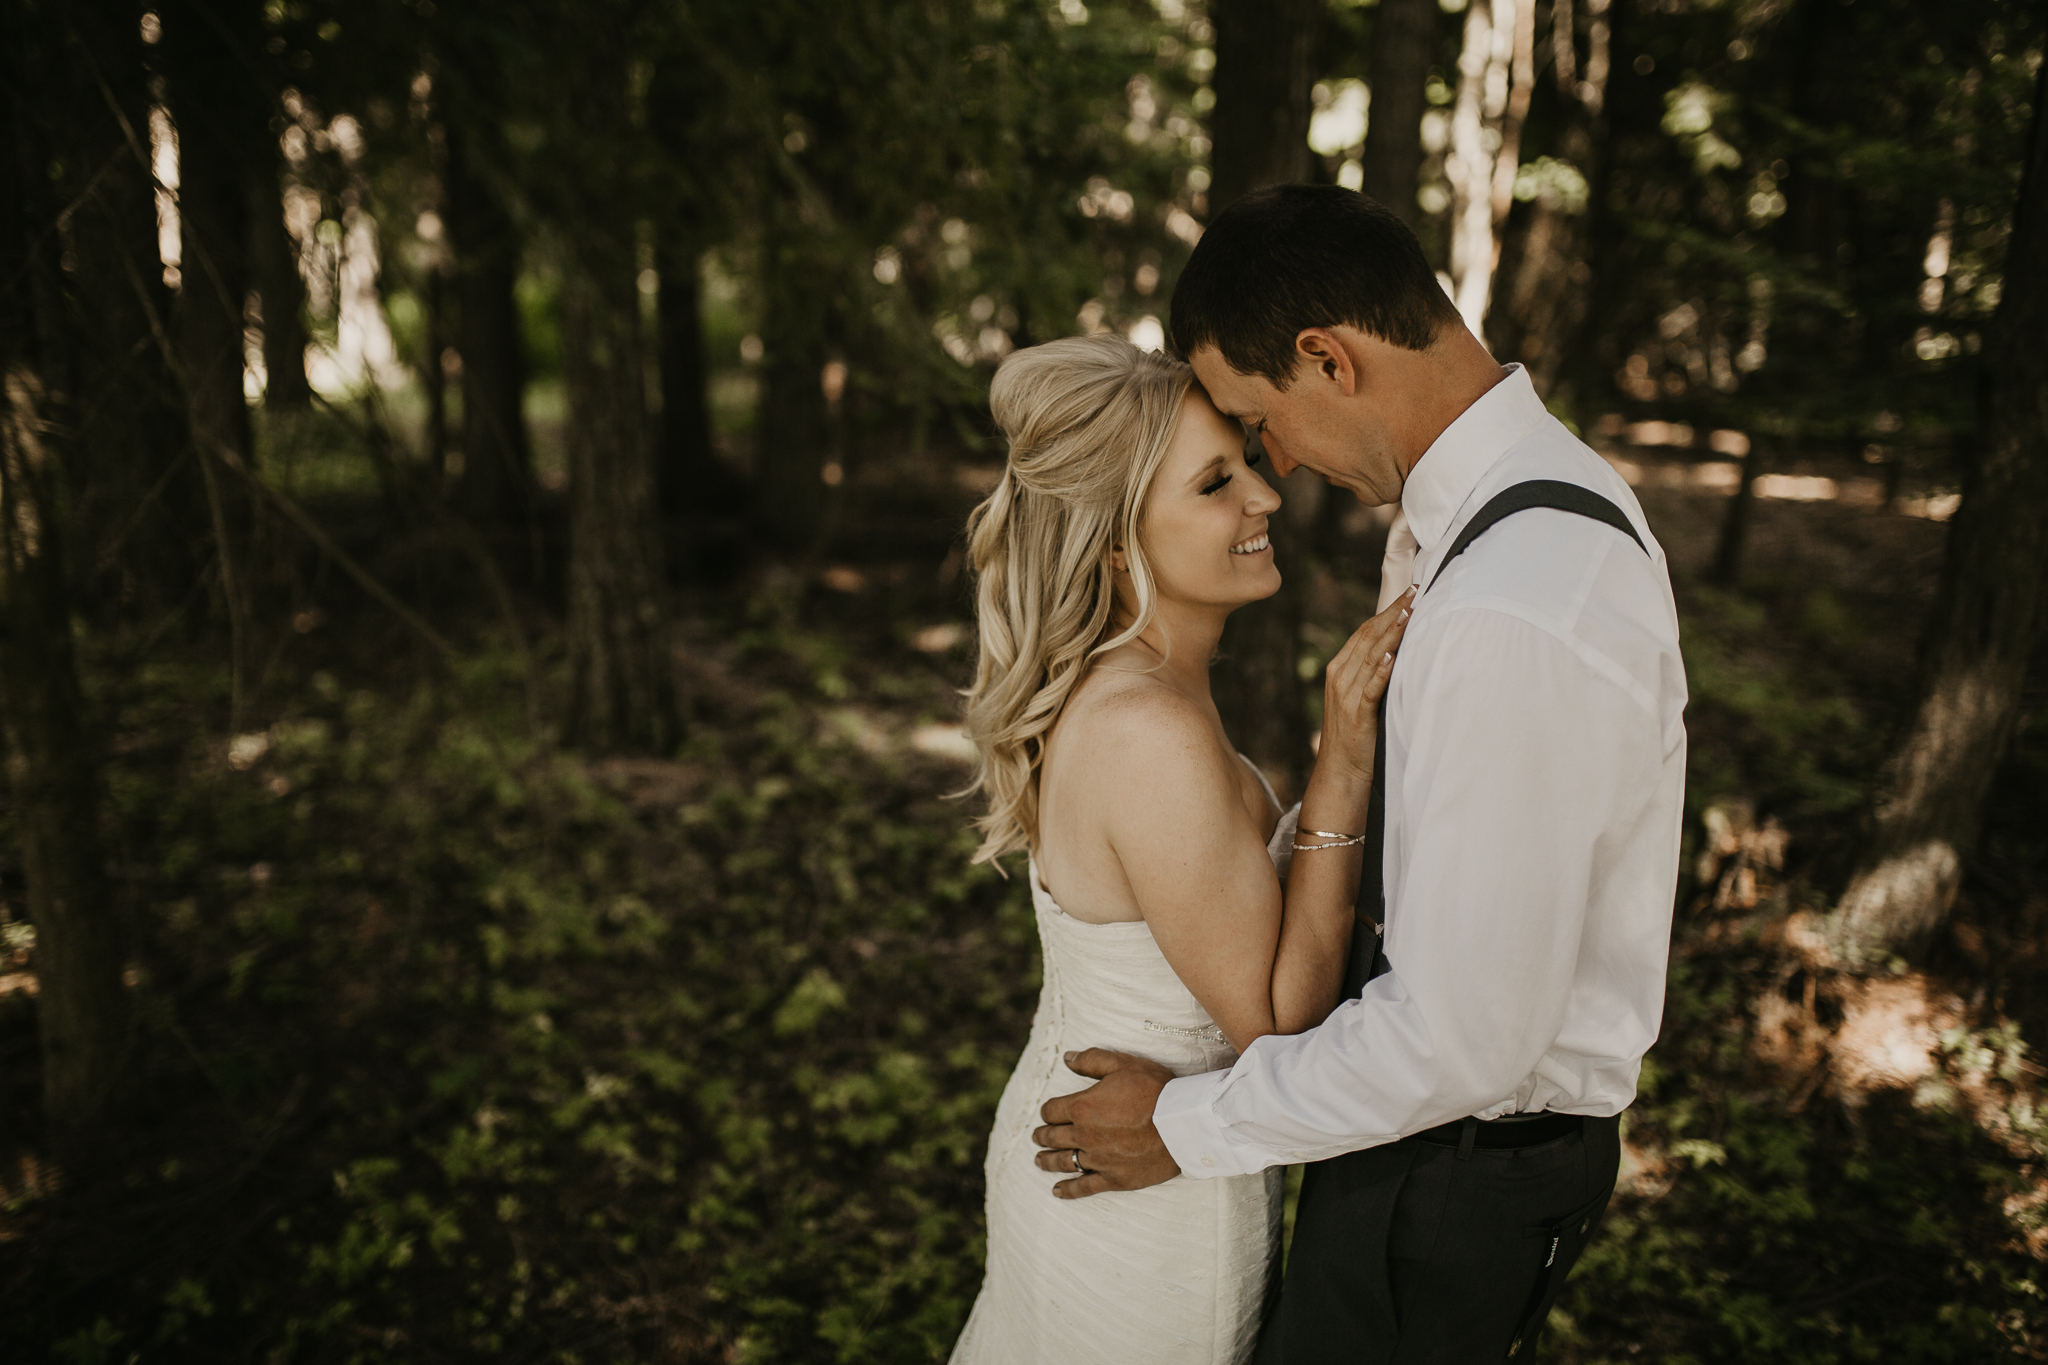 Bride and Groom snuggling in the forest during photoshoot